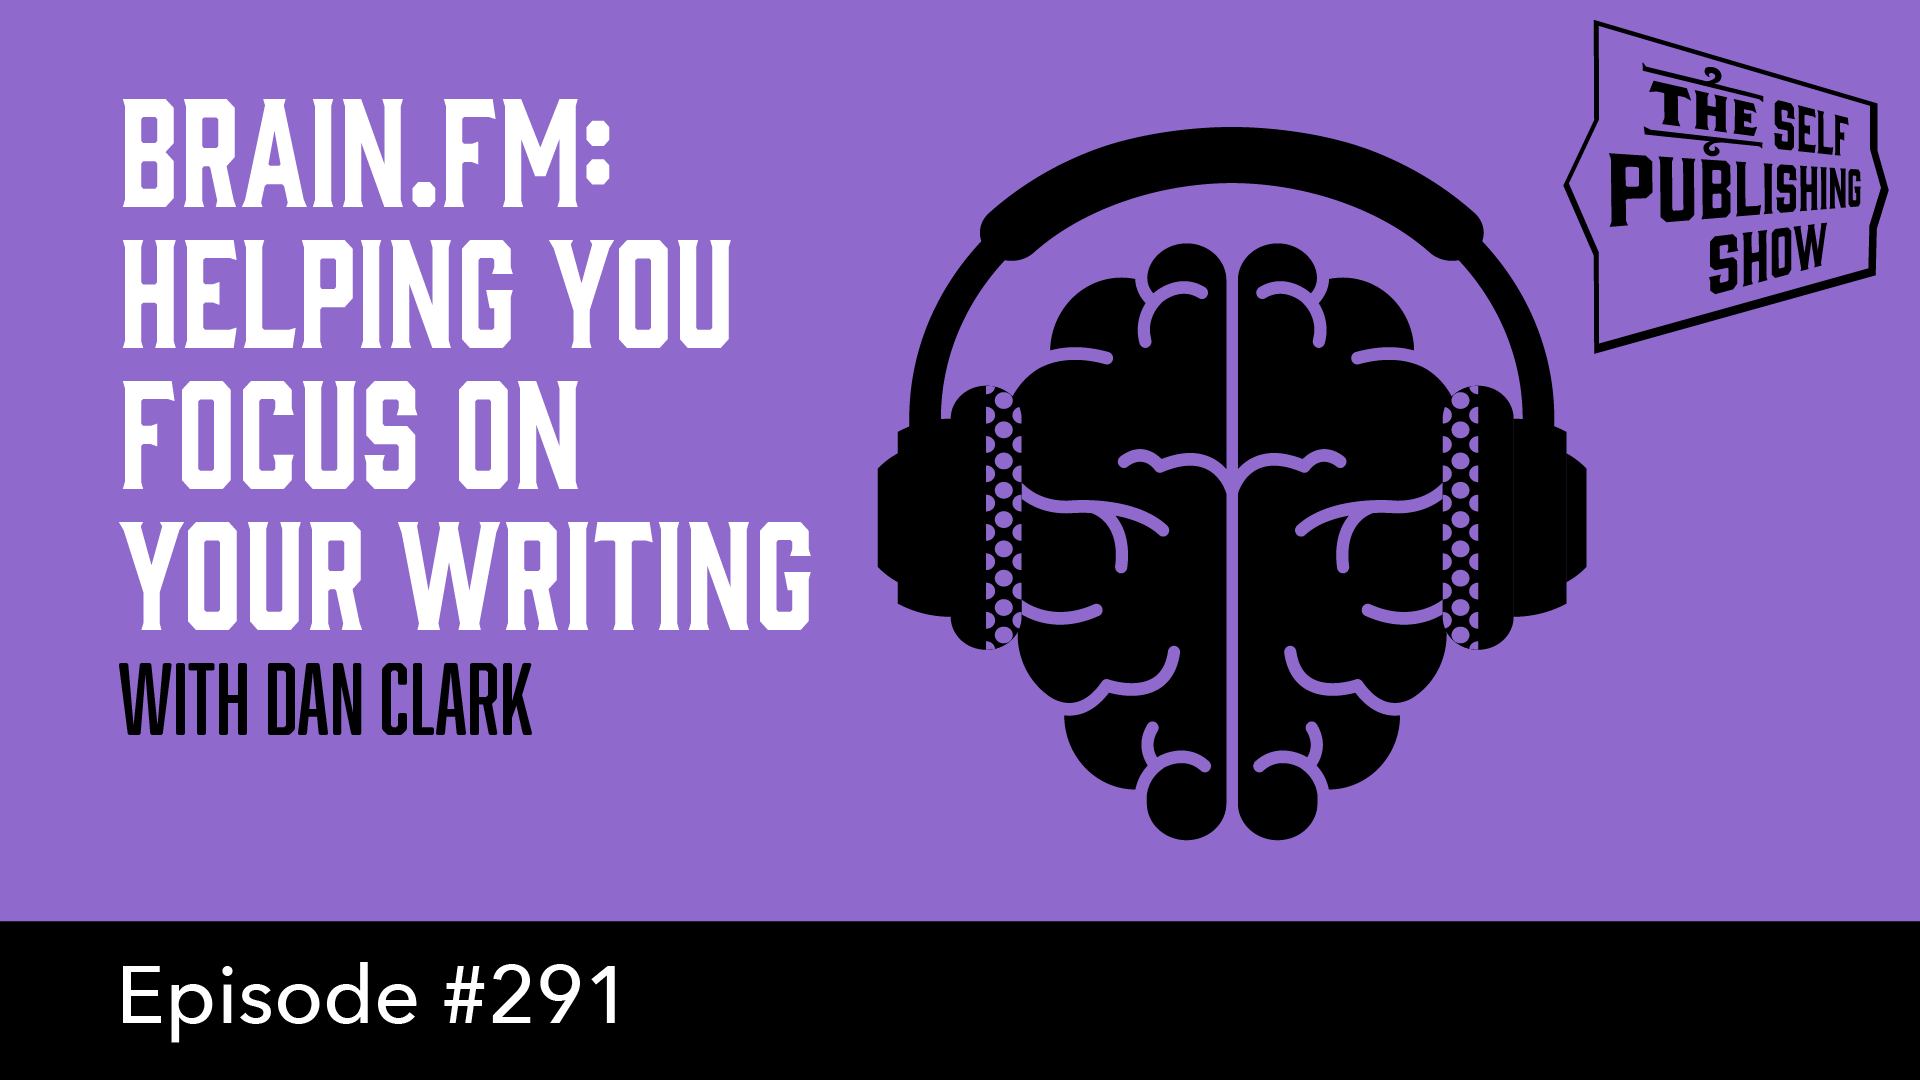 SPS-291: Brain.fm: Helping You Focus on Your Writing – with Dan Clark